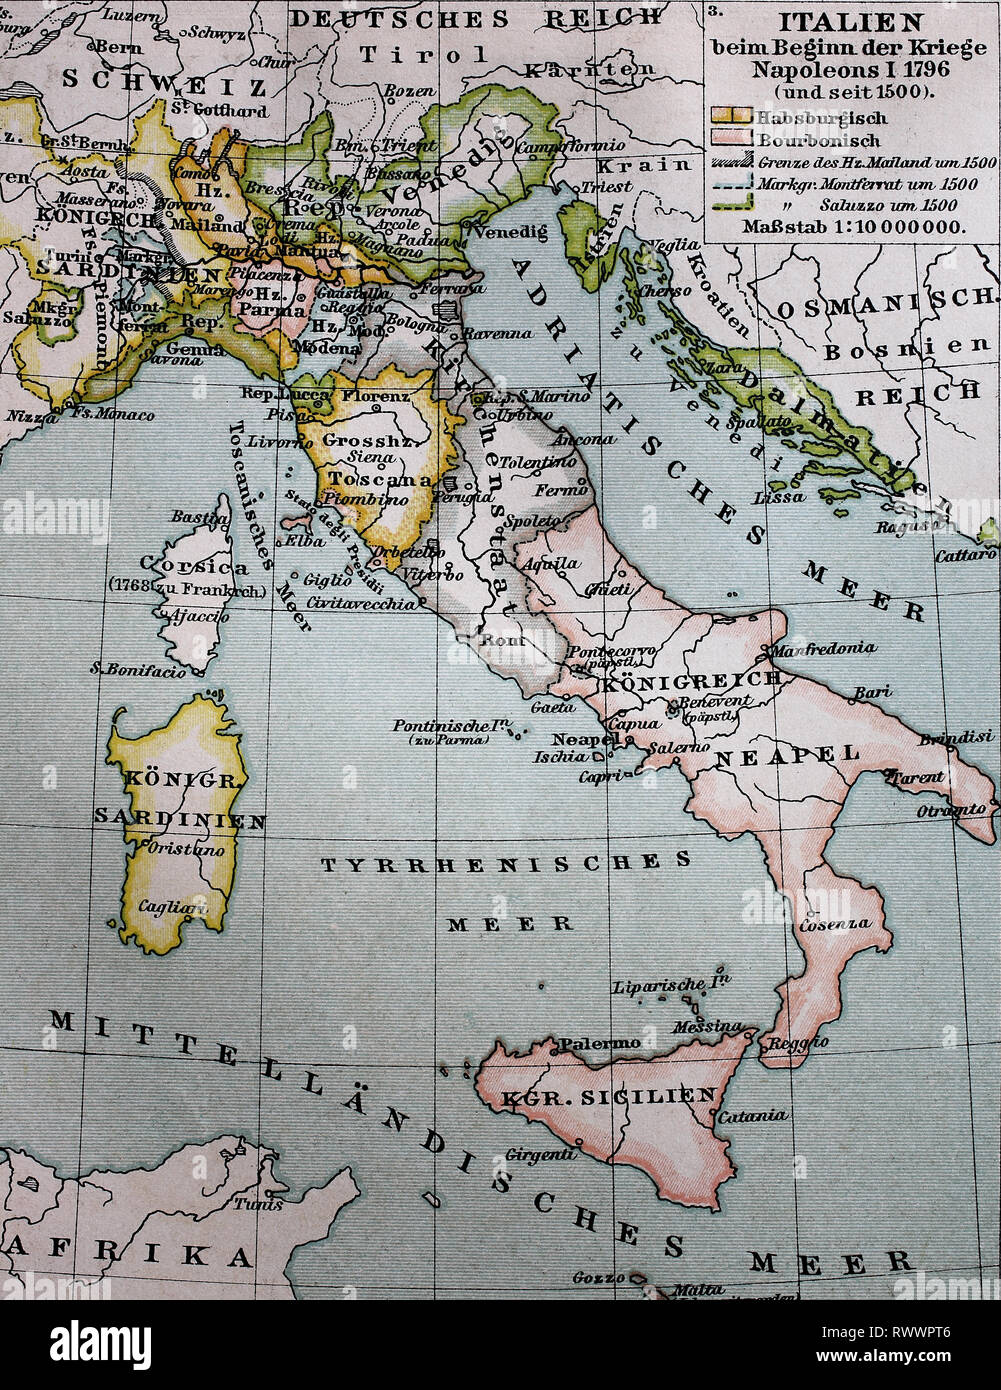 Digital improved reproduction, Map of Italy from 1500 until the beginning of the Napoleonic Wars, 1796, original woodprint from th 19th century - Stock Image